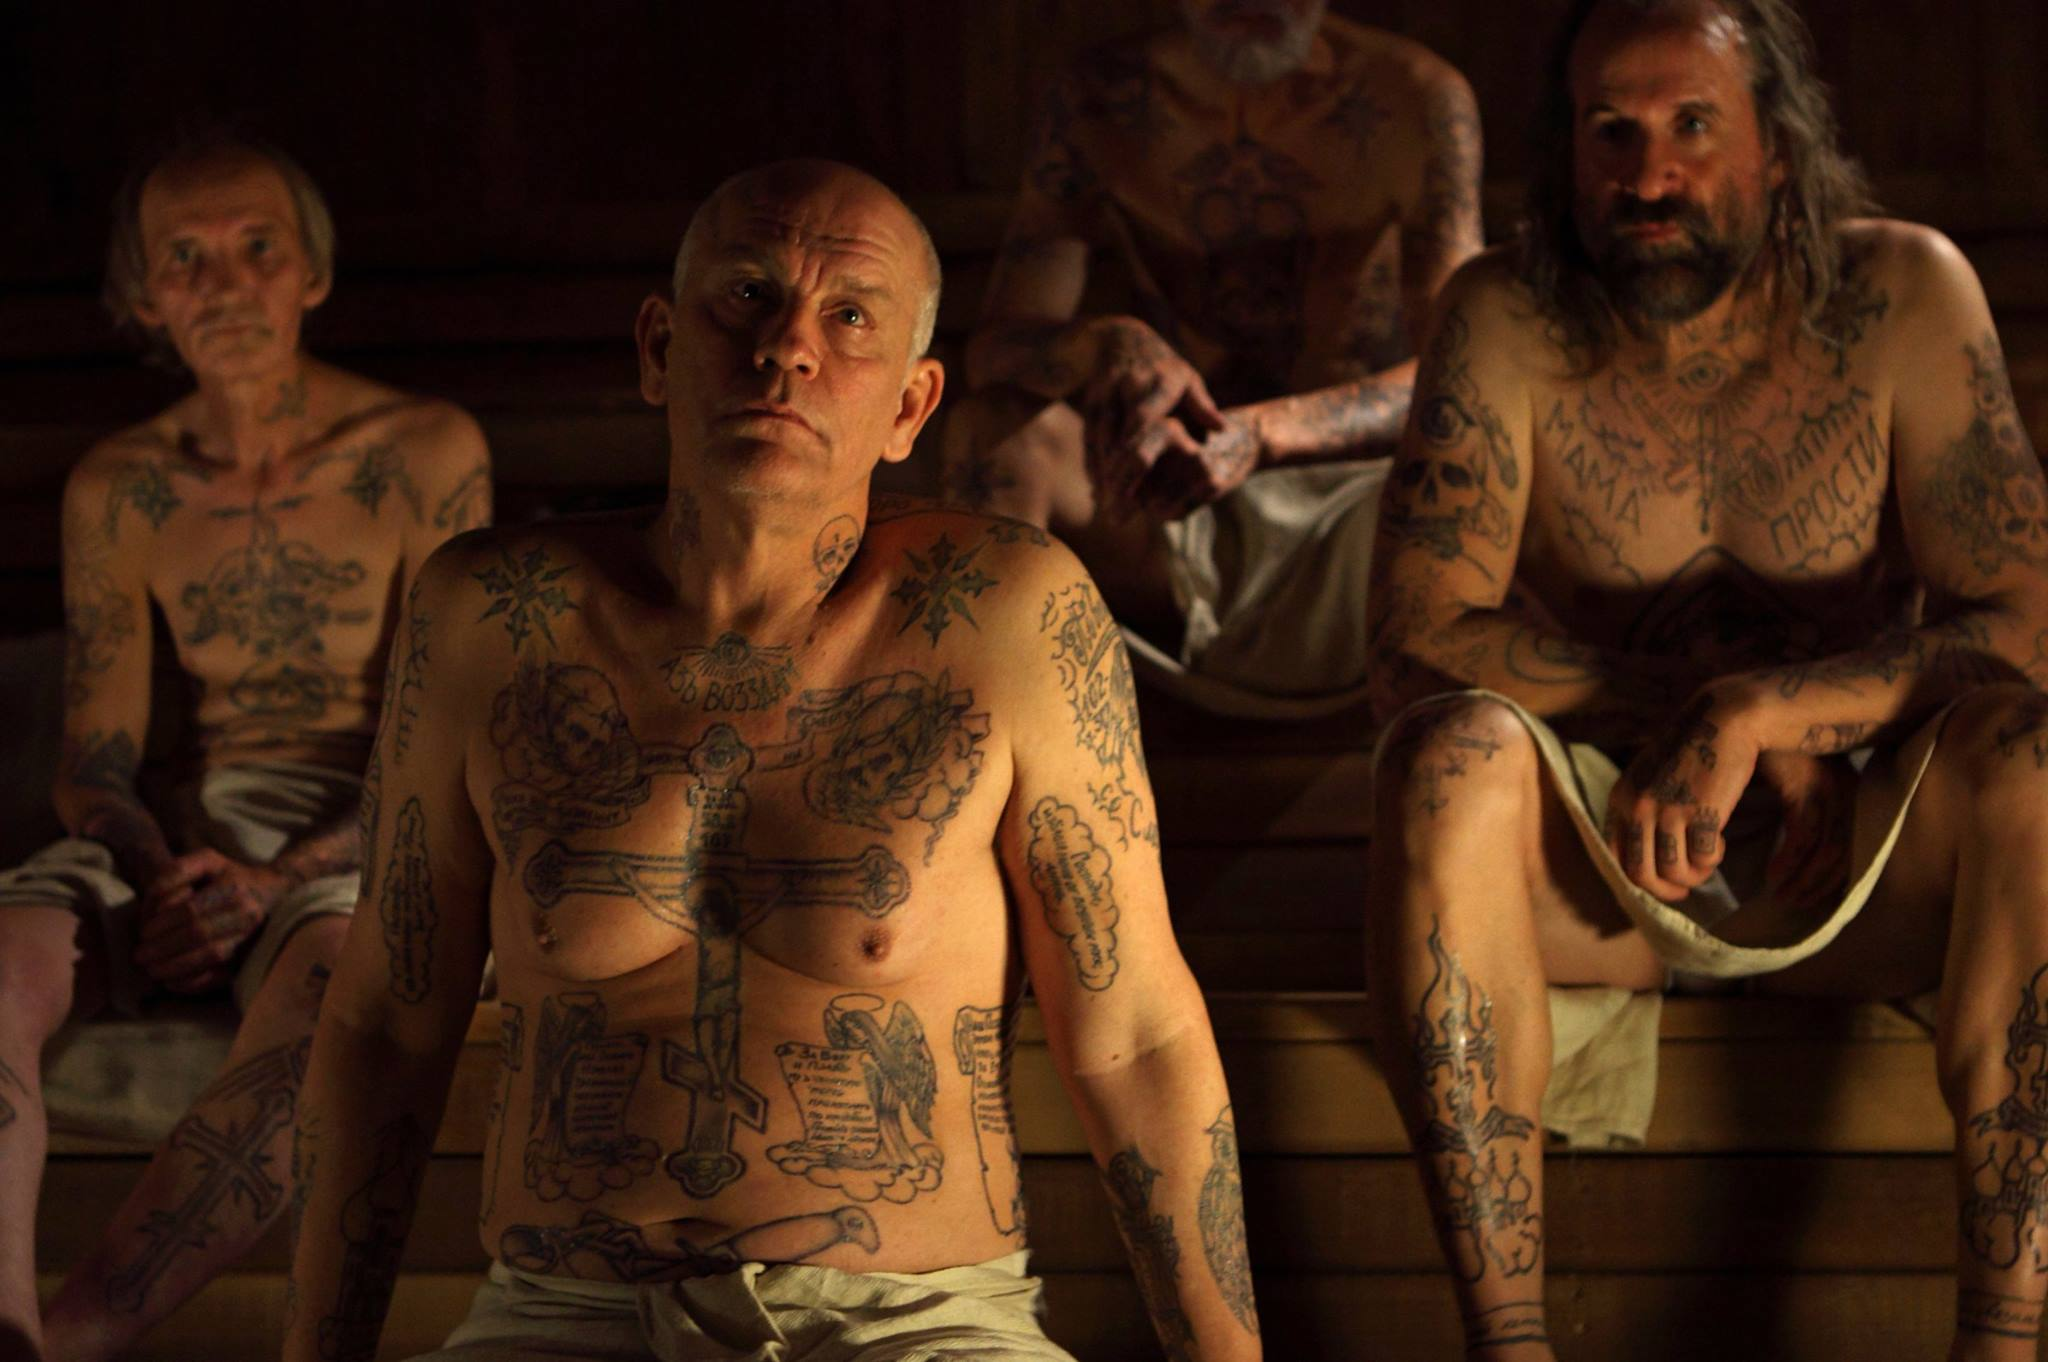 Educación_Siberiana_2015_John_Malkovich_Siberian_Education_tattoos